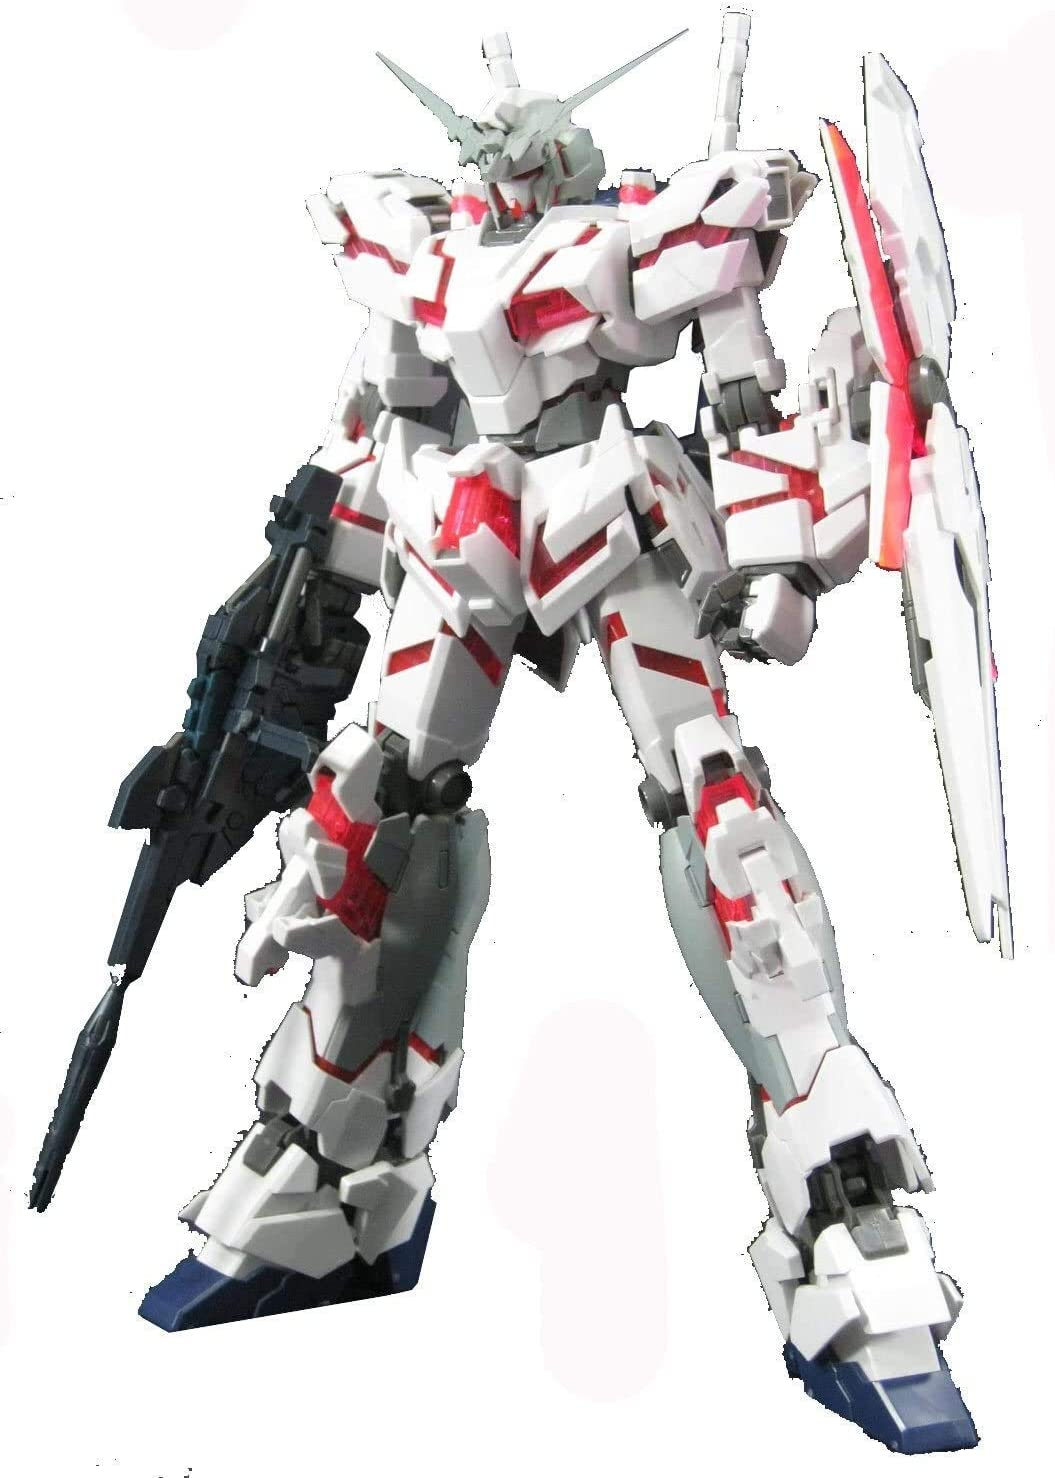 Bandai Hobby RX-0 Unicorn Gundam HD Color with MS Cage Master Grade Figure, Scale 1/100